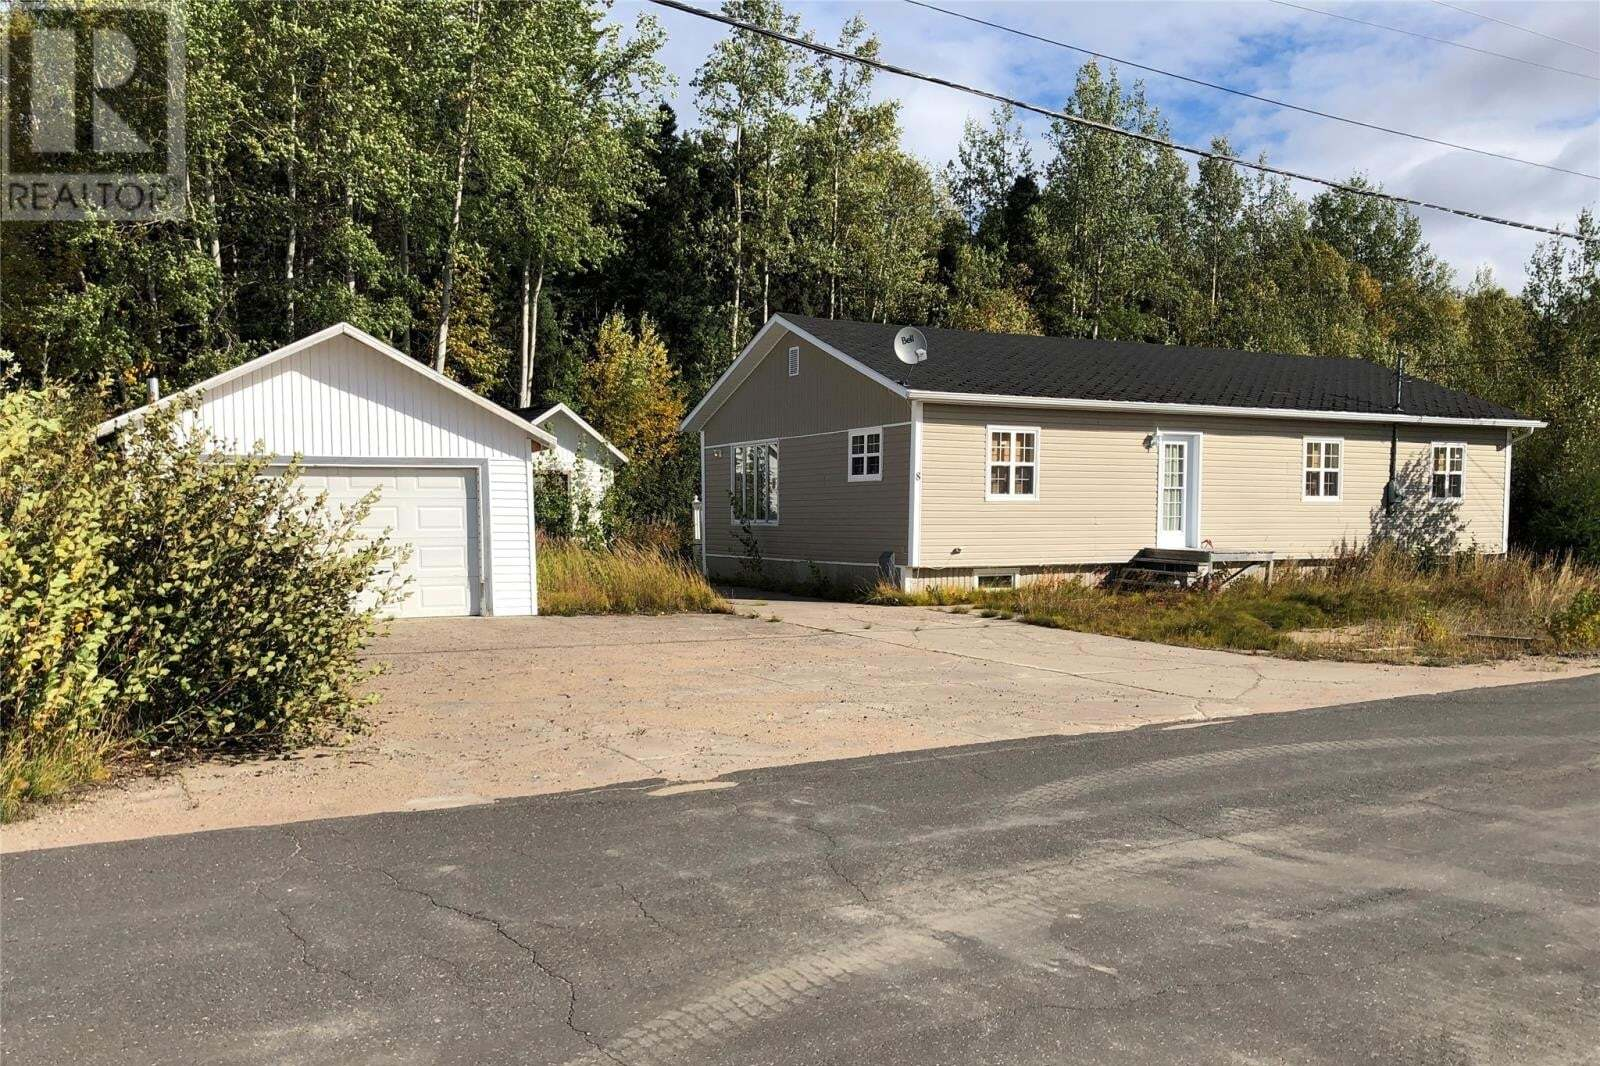 House for sale at 8 Commercial St Happy Valley - Goose Bay Newfoundland - MLS: 1221736